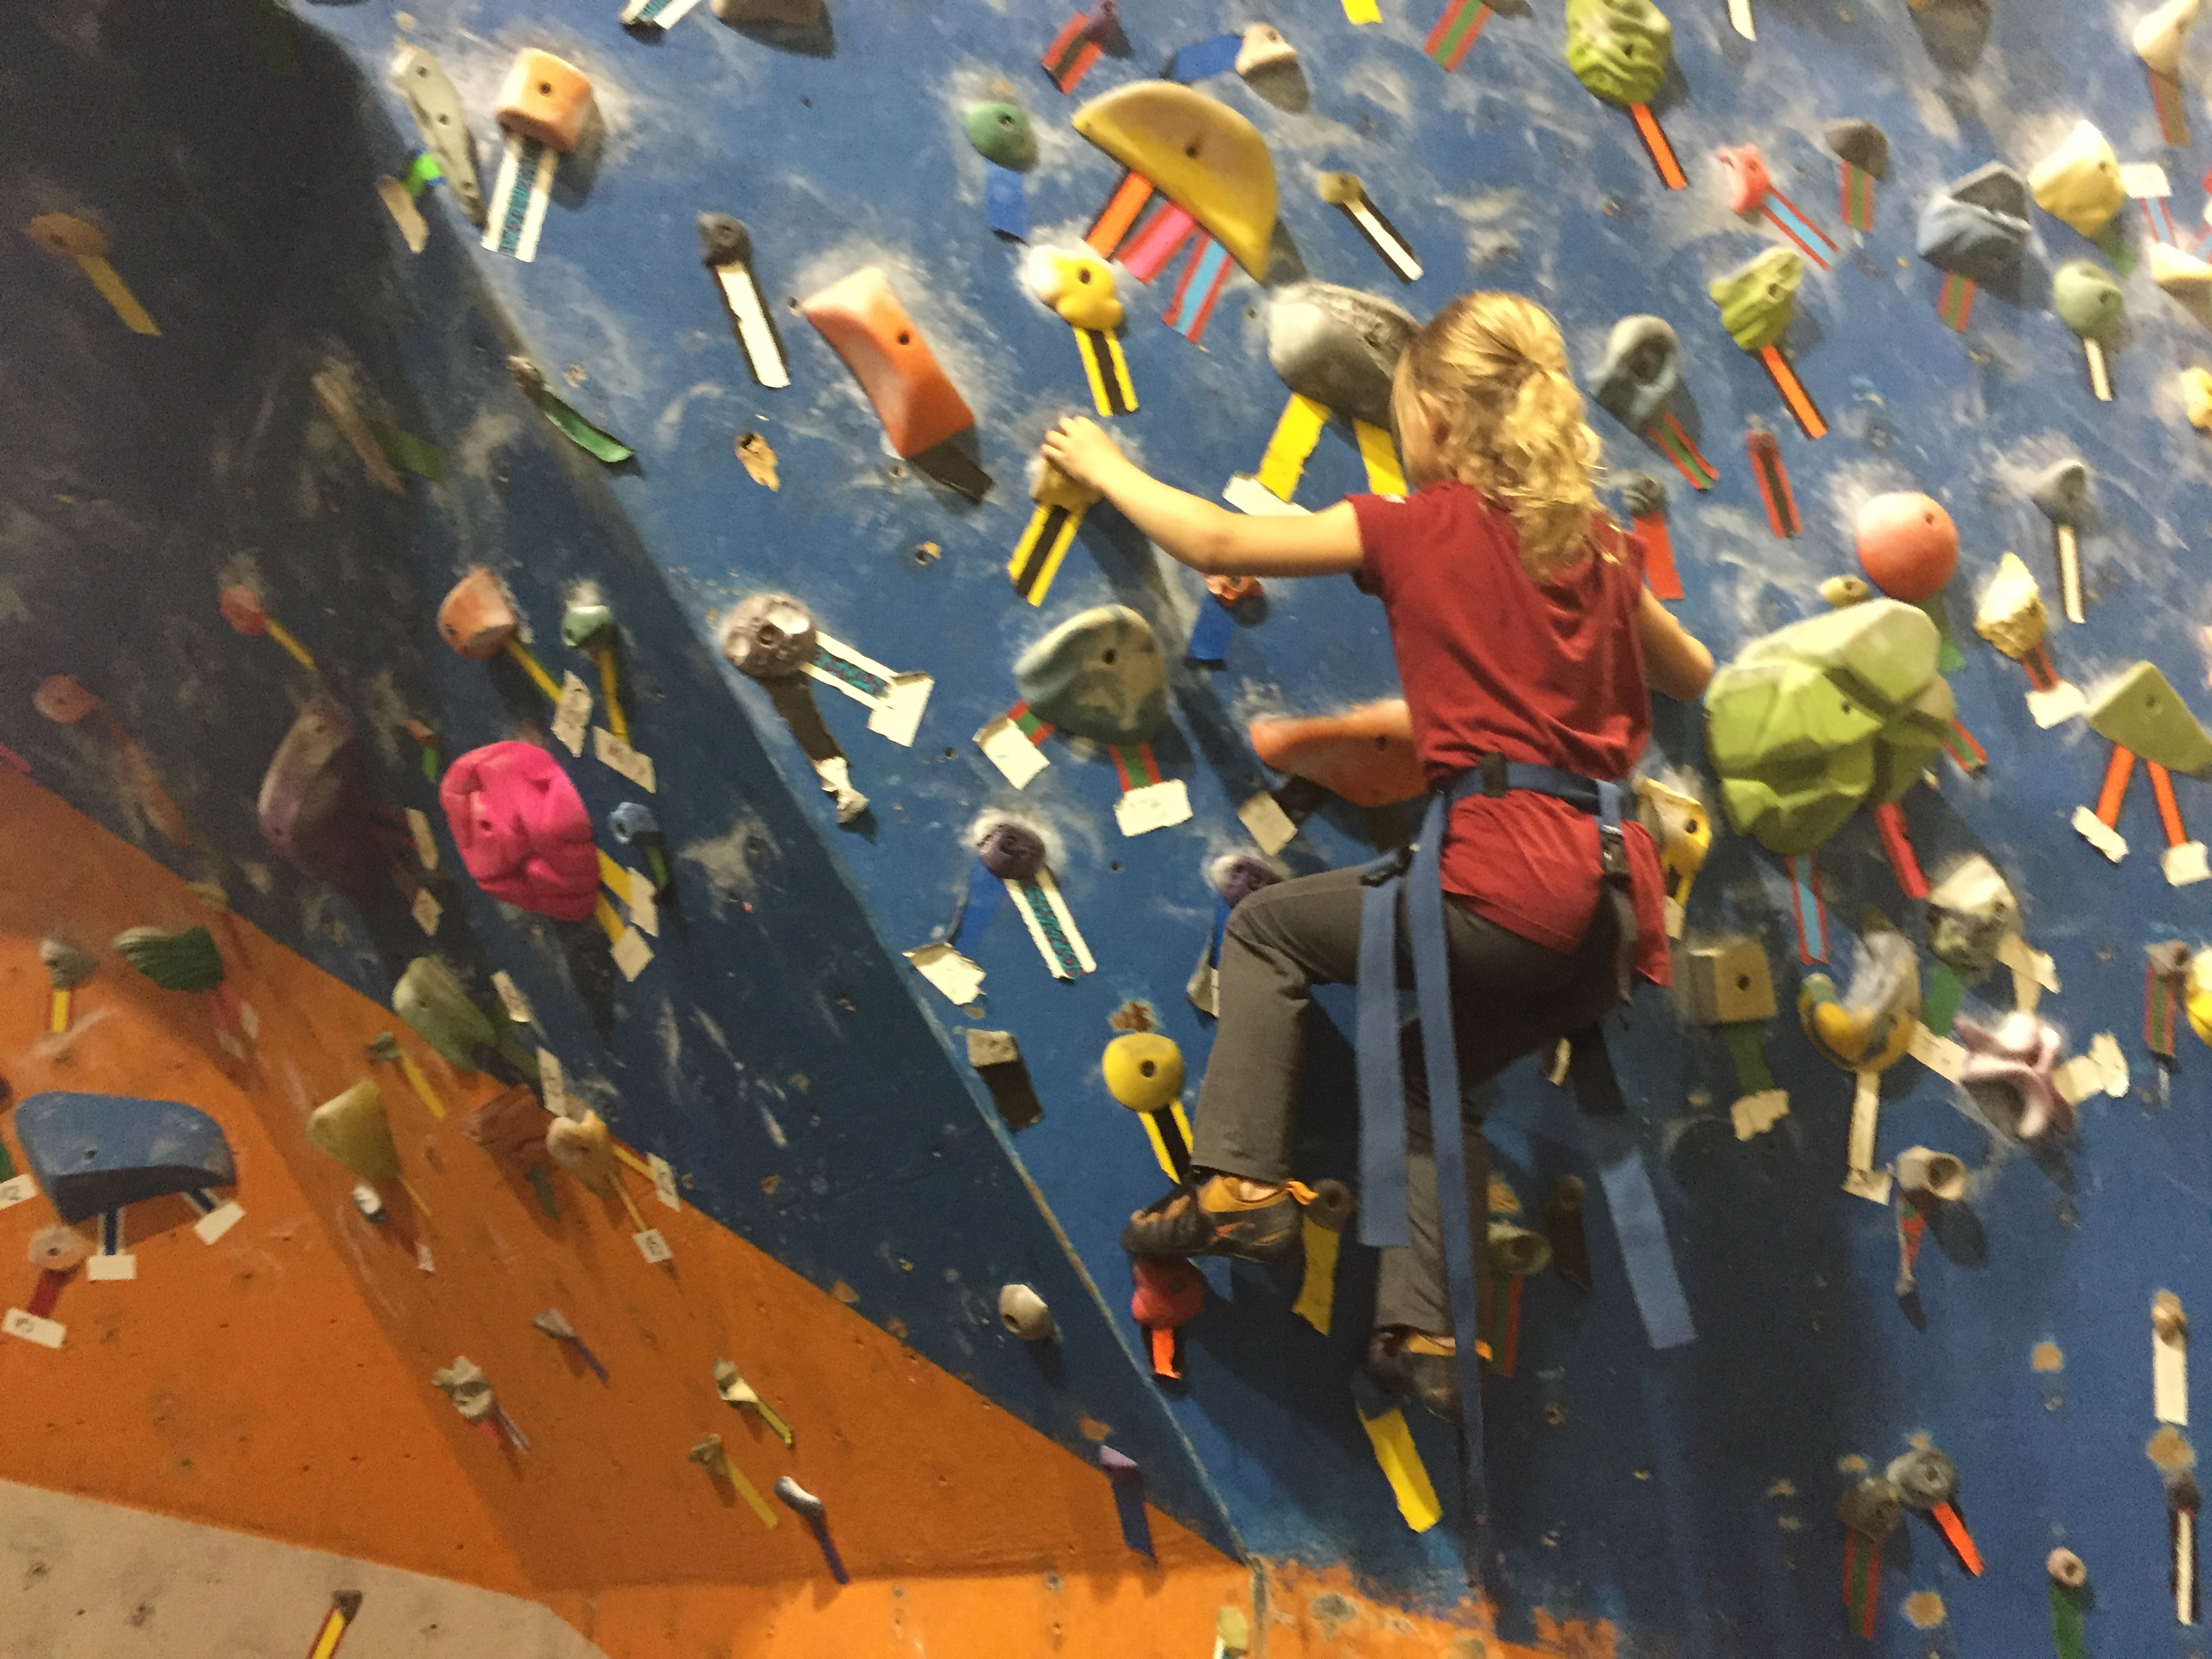 Project Climbing Centre Abbotsford - Young Girl Climbing with #ExploreBCbyBus